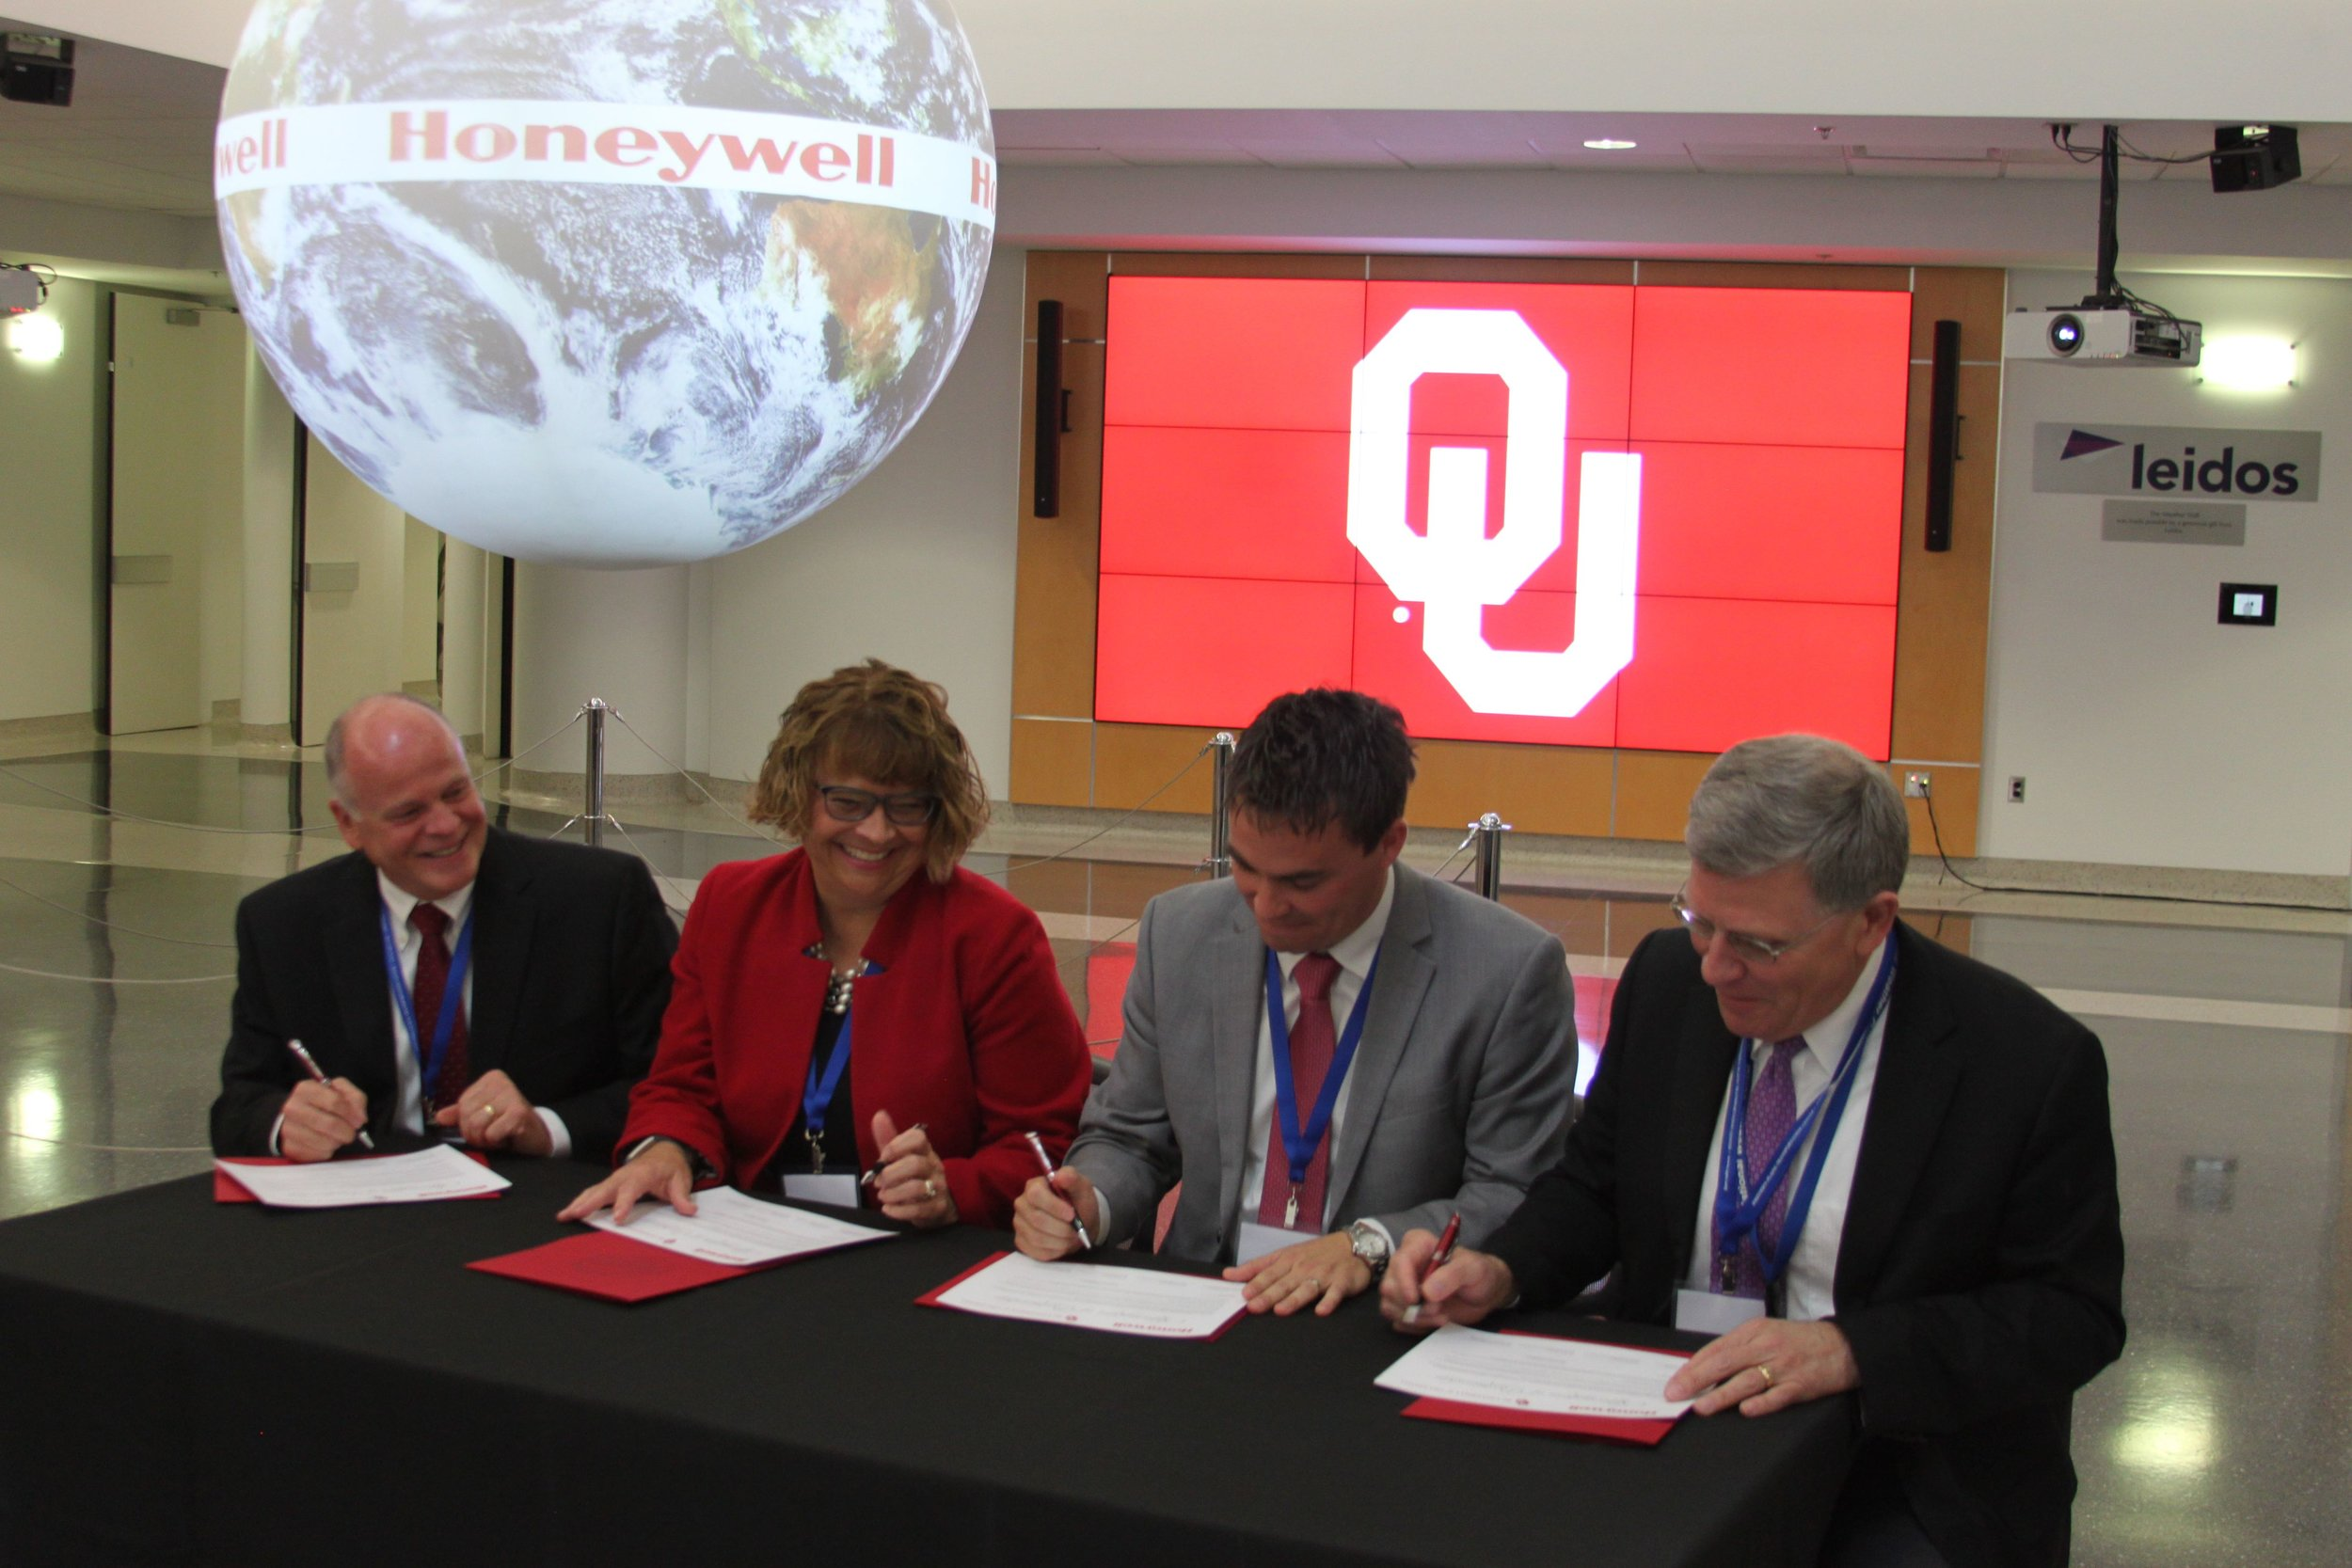 The University of Oklahoma and Honeywell sign a master agreement for research, October 4, 2017.  Southern Plains personnel assisted with creating the event.